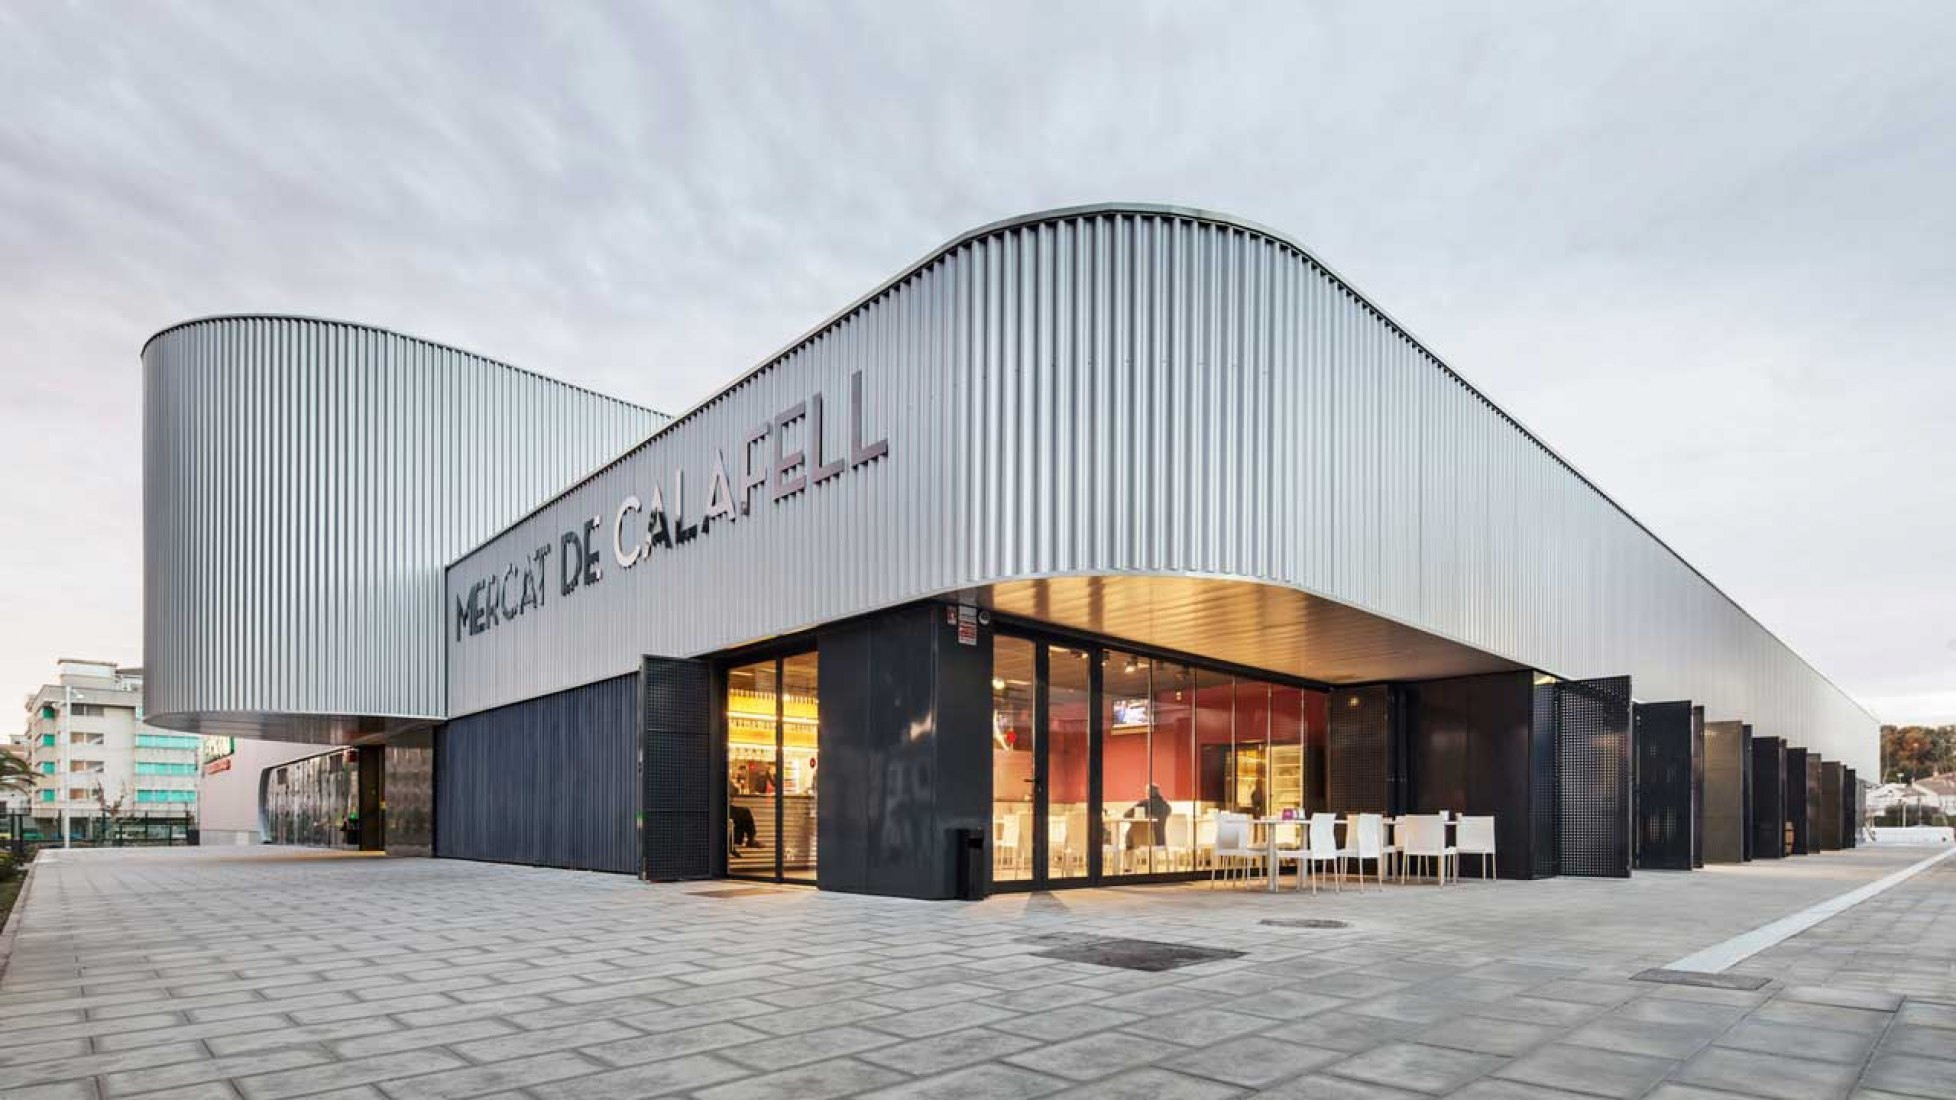 Calafell's new market by Batlle & Roig Architects. Photography © Jordi Surroca.